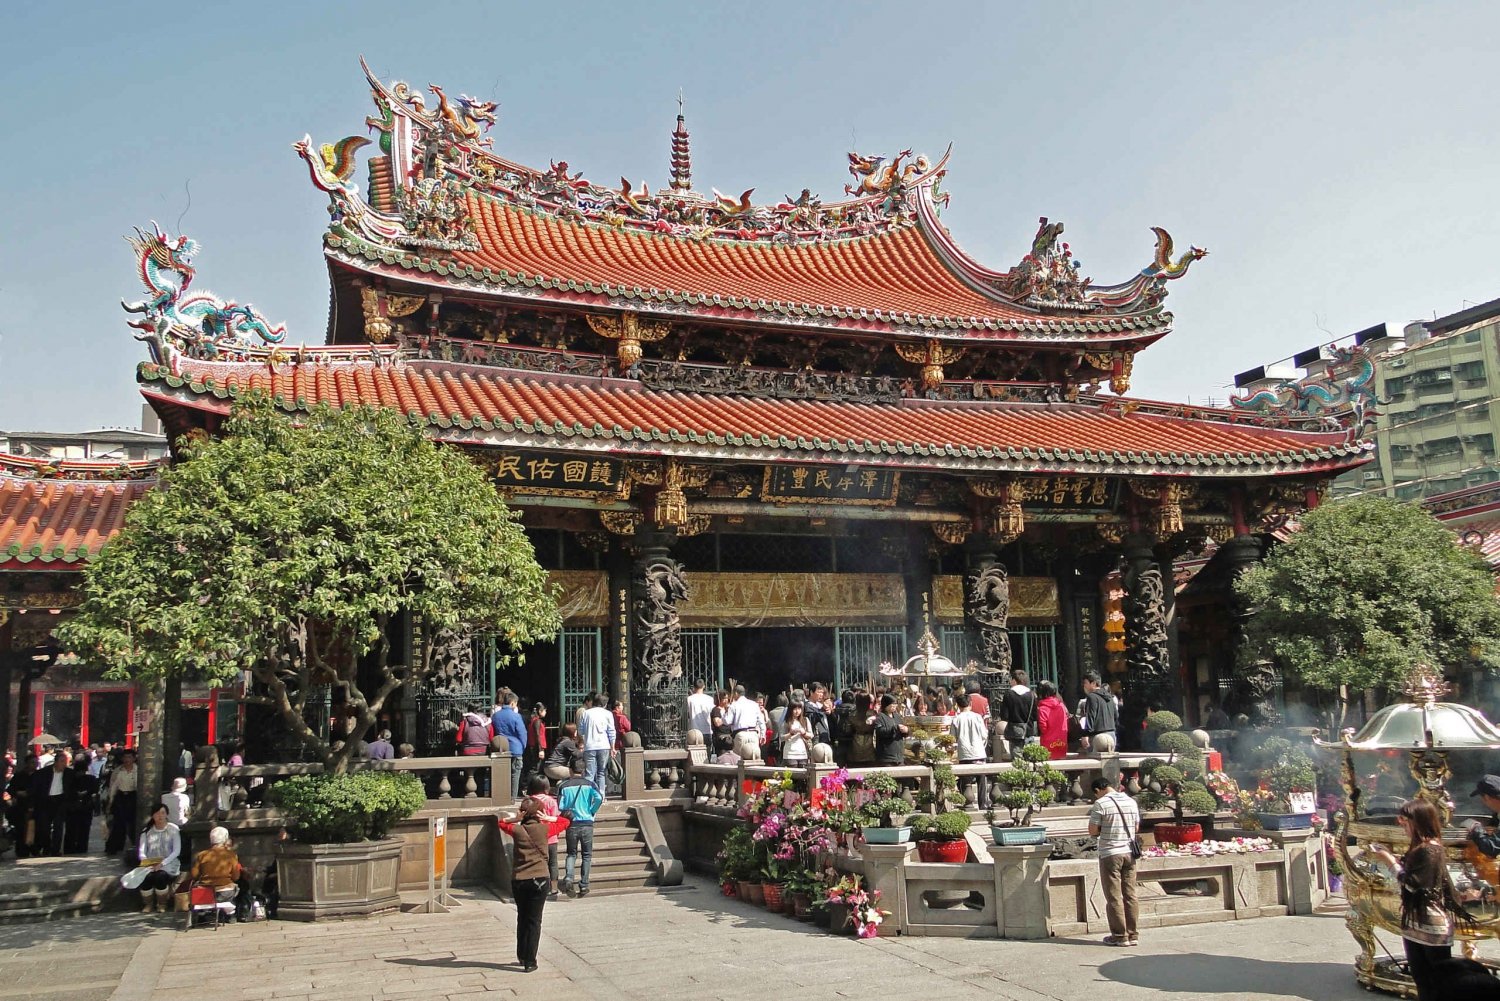 Longshan Temple and Bopiliao Historic Walking Tour